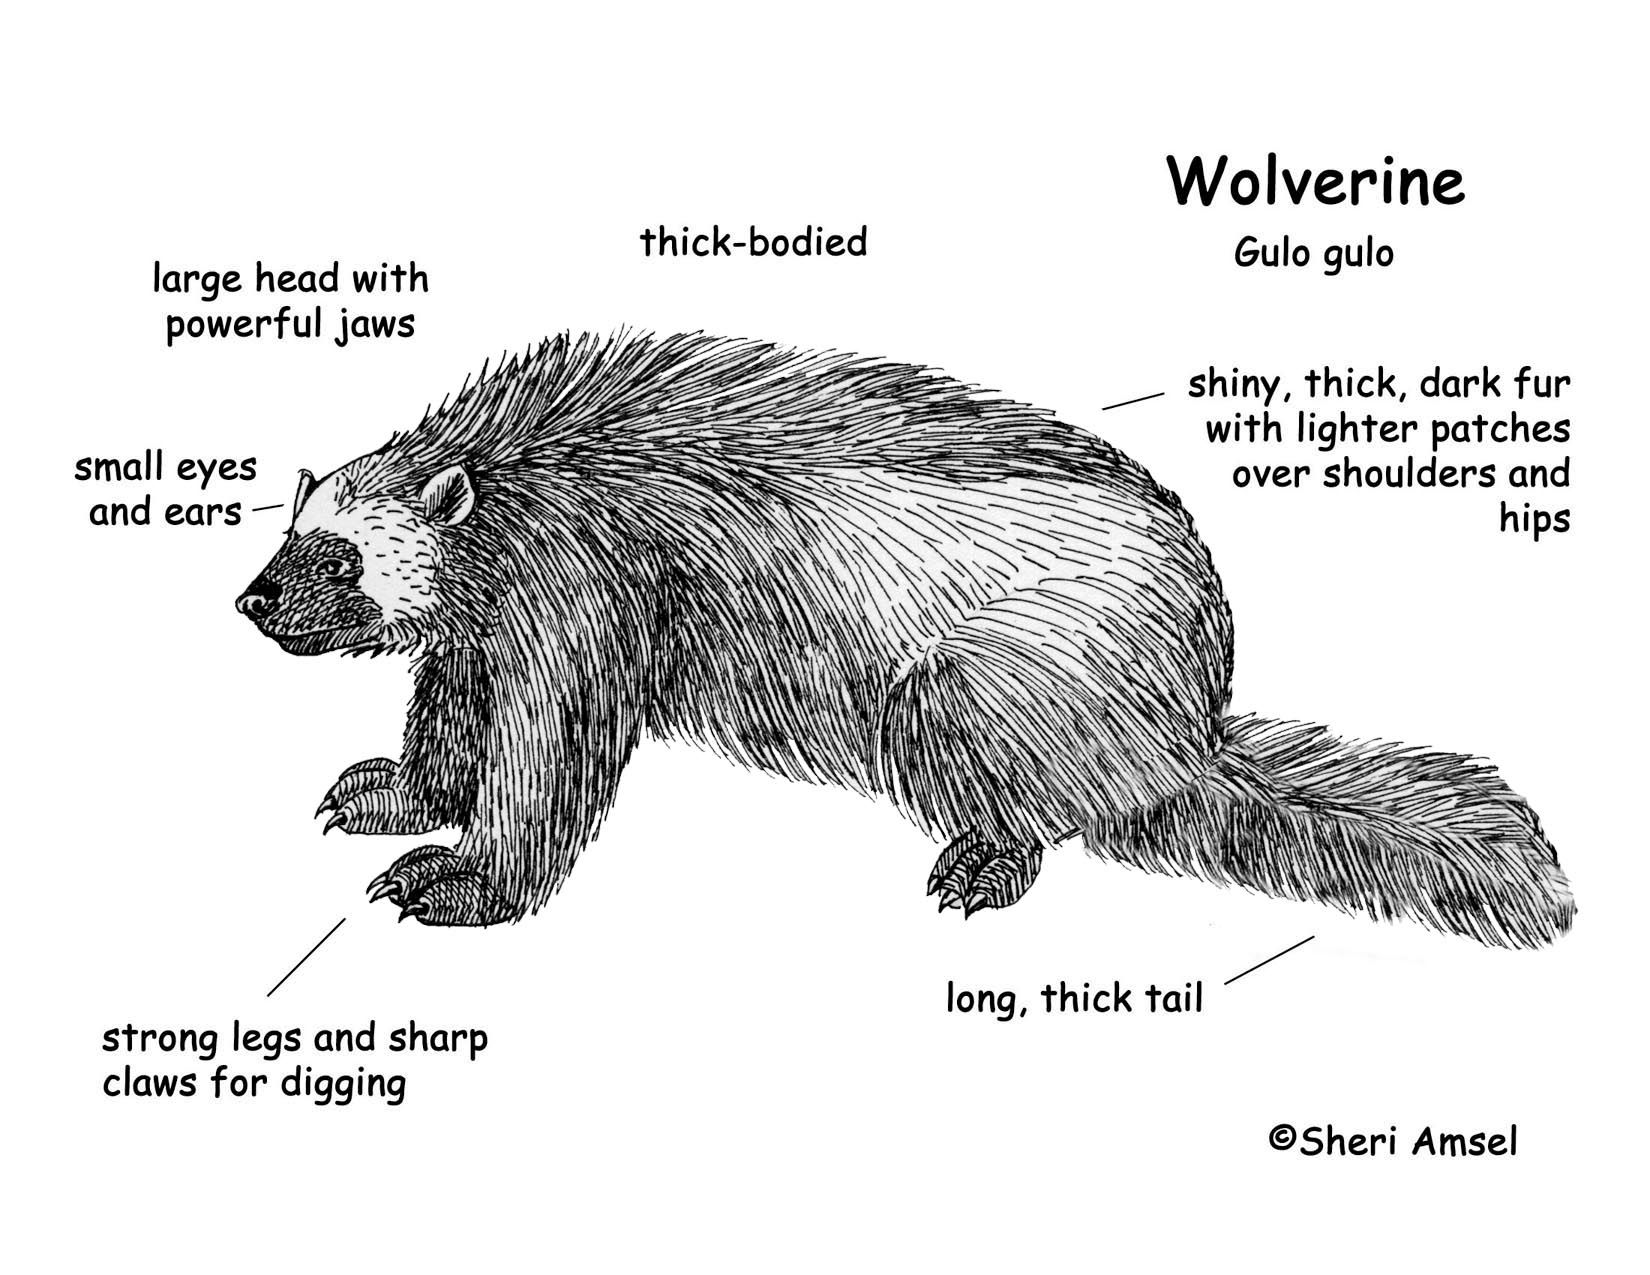 black Bear Body Diagram Download Hi-Res B&W Diagram